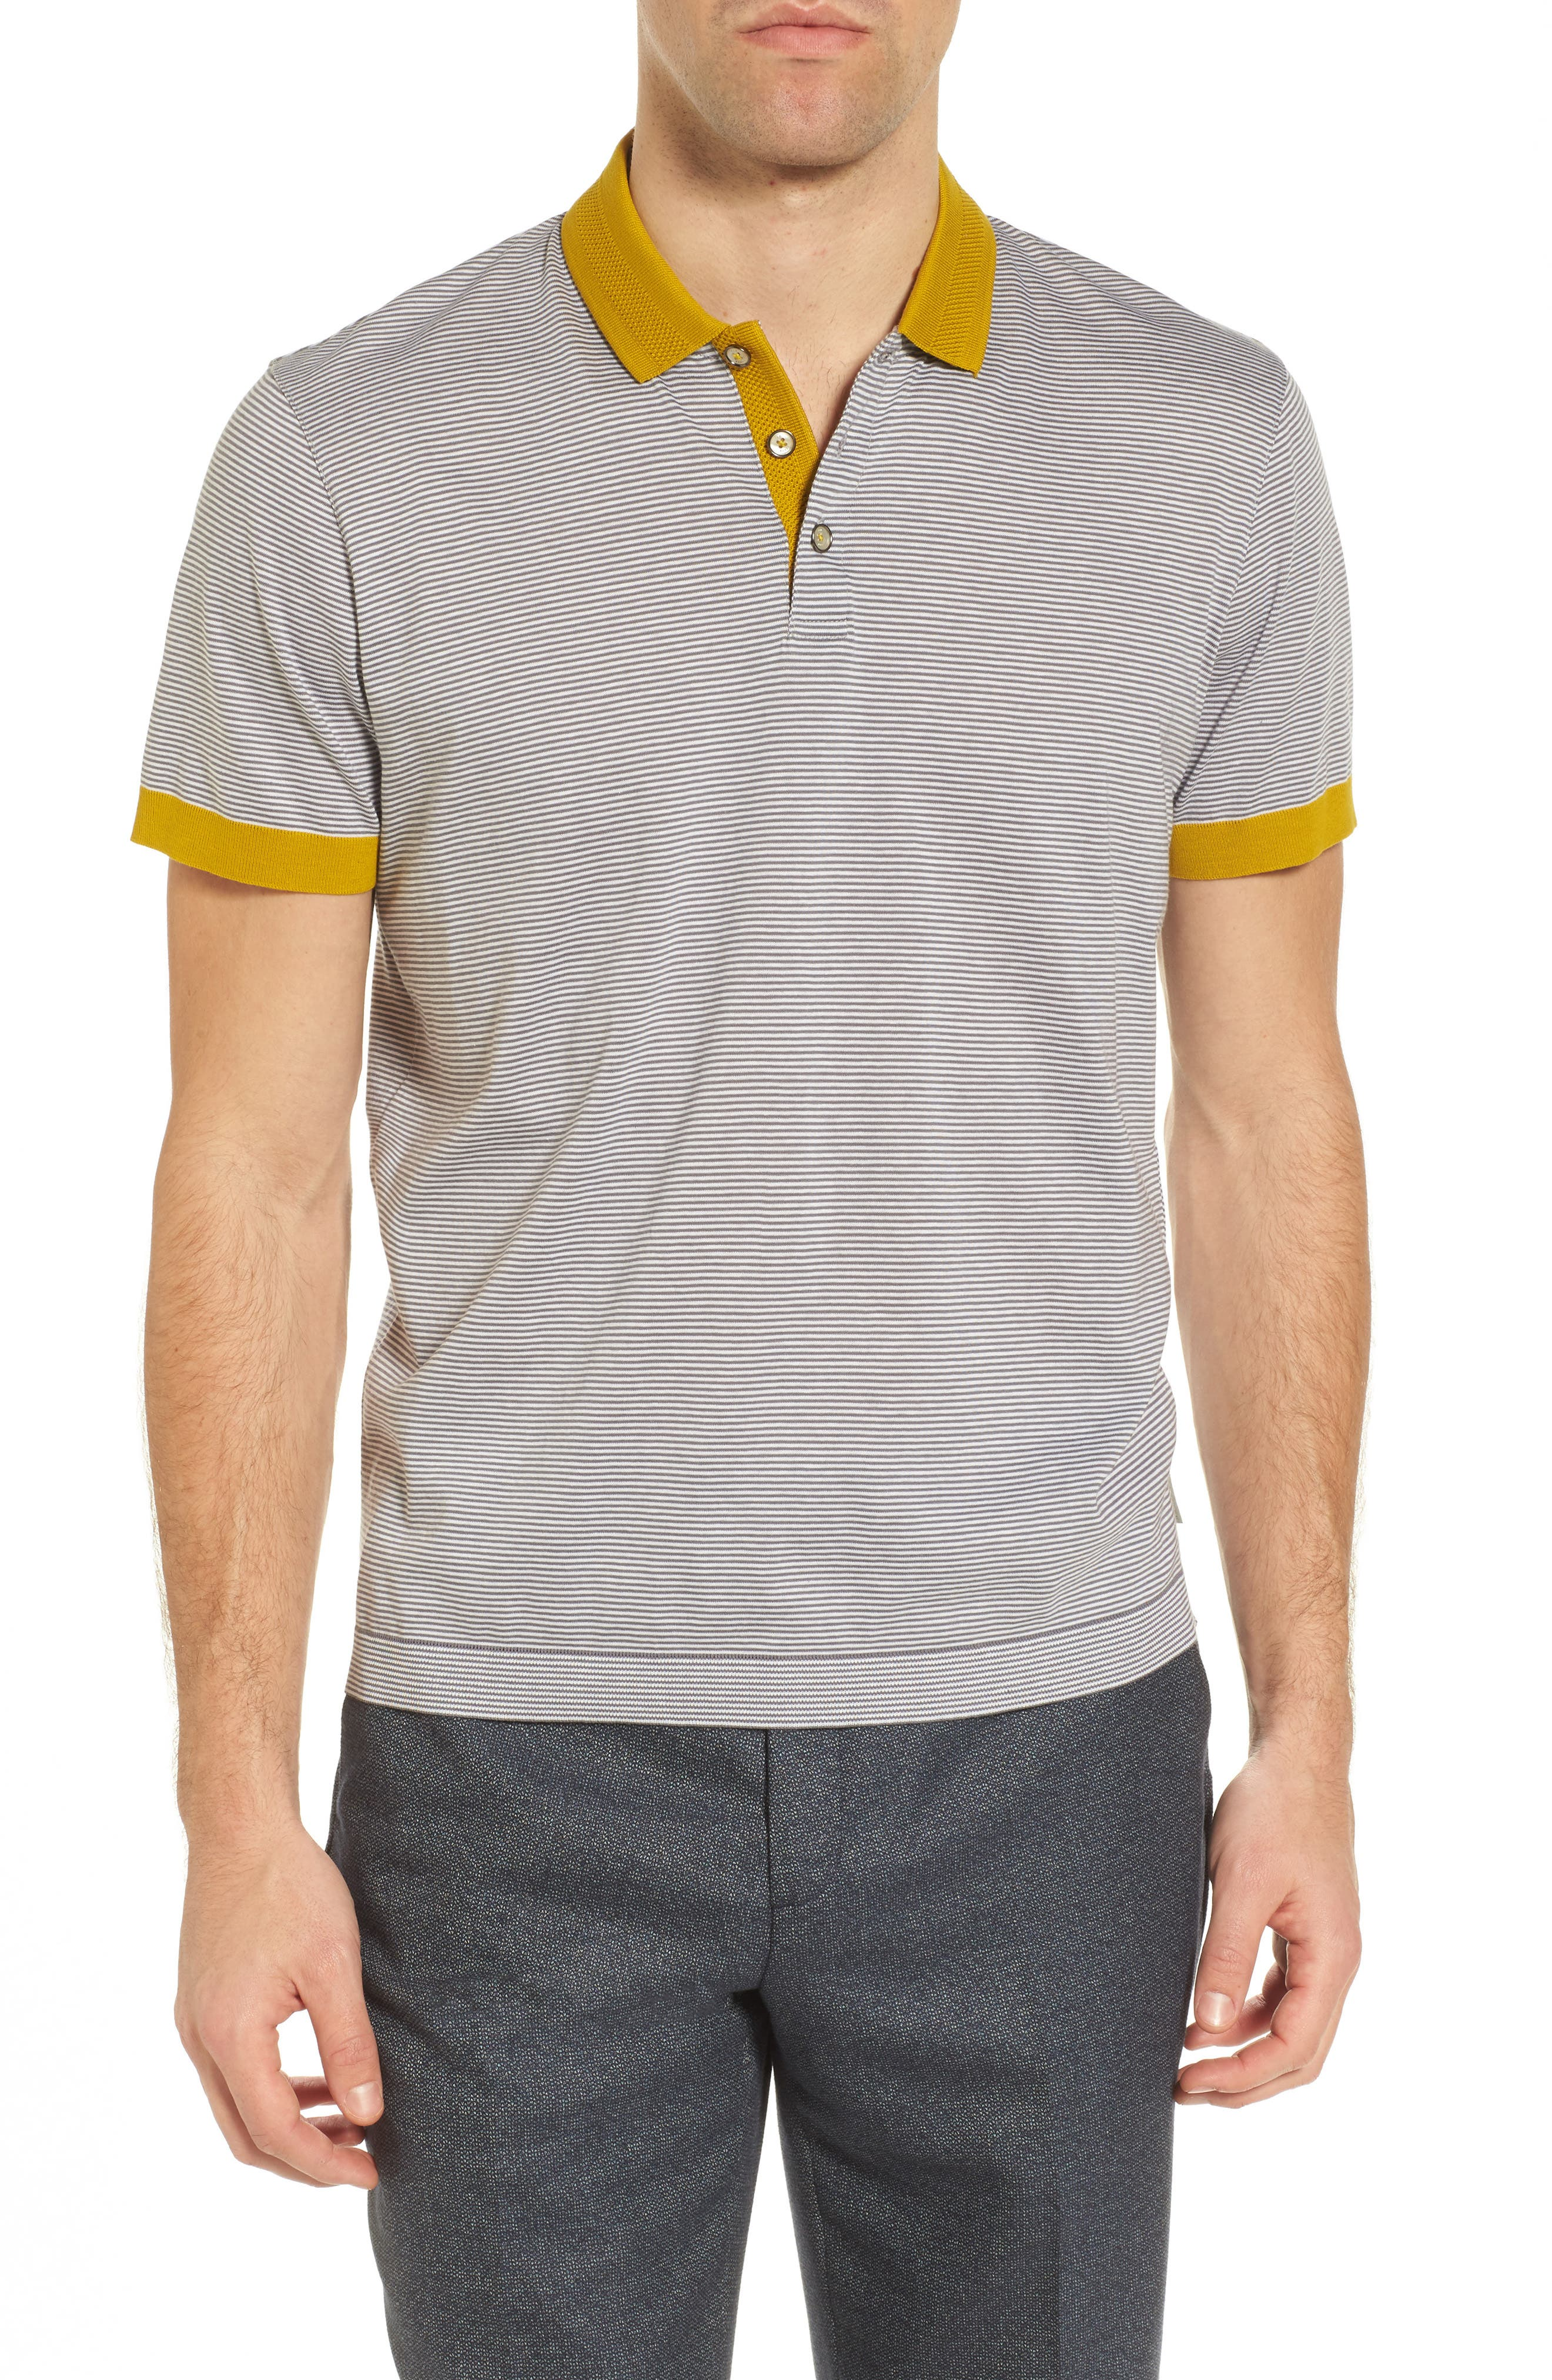 Beagle Trim Fit Stripe Jersey Polo,                         Main,                         color, Grey